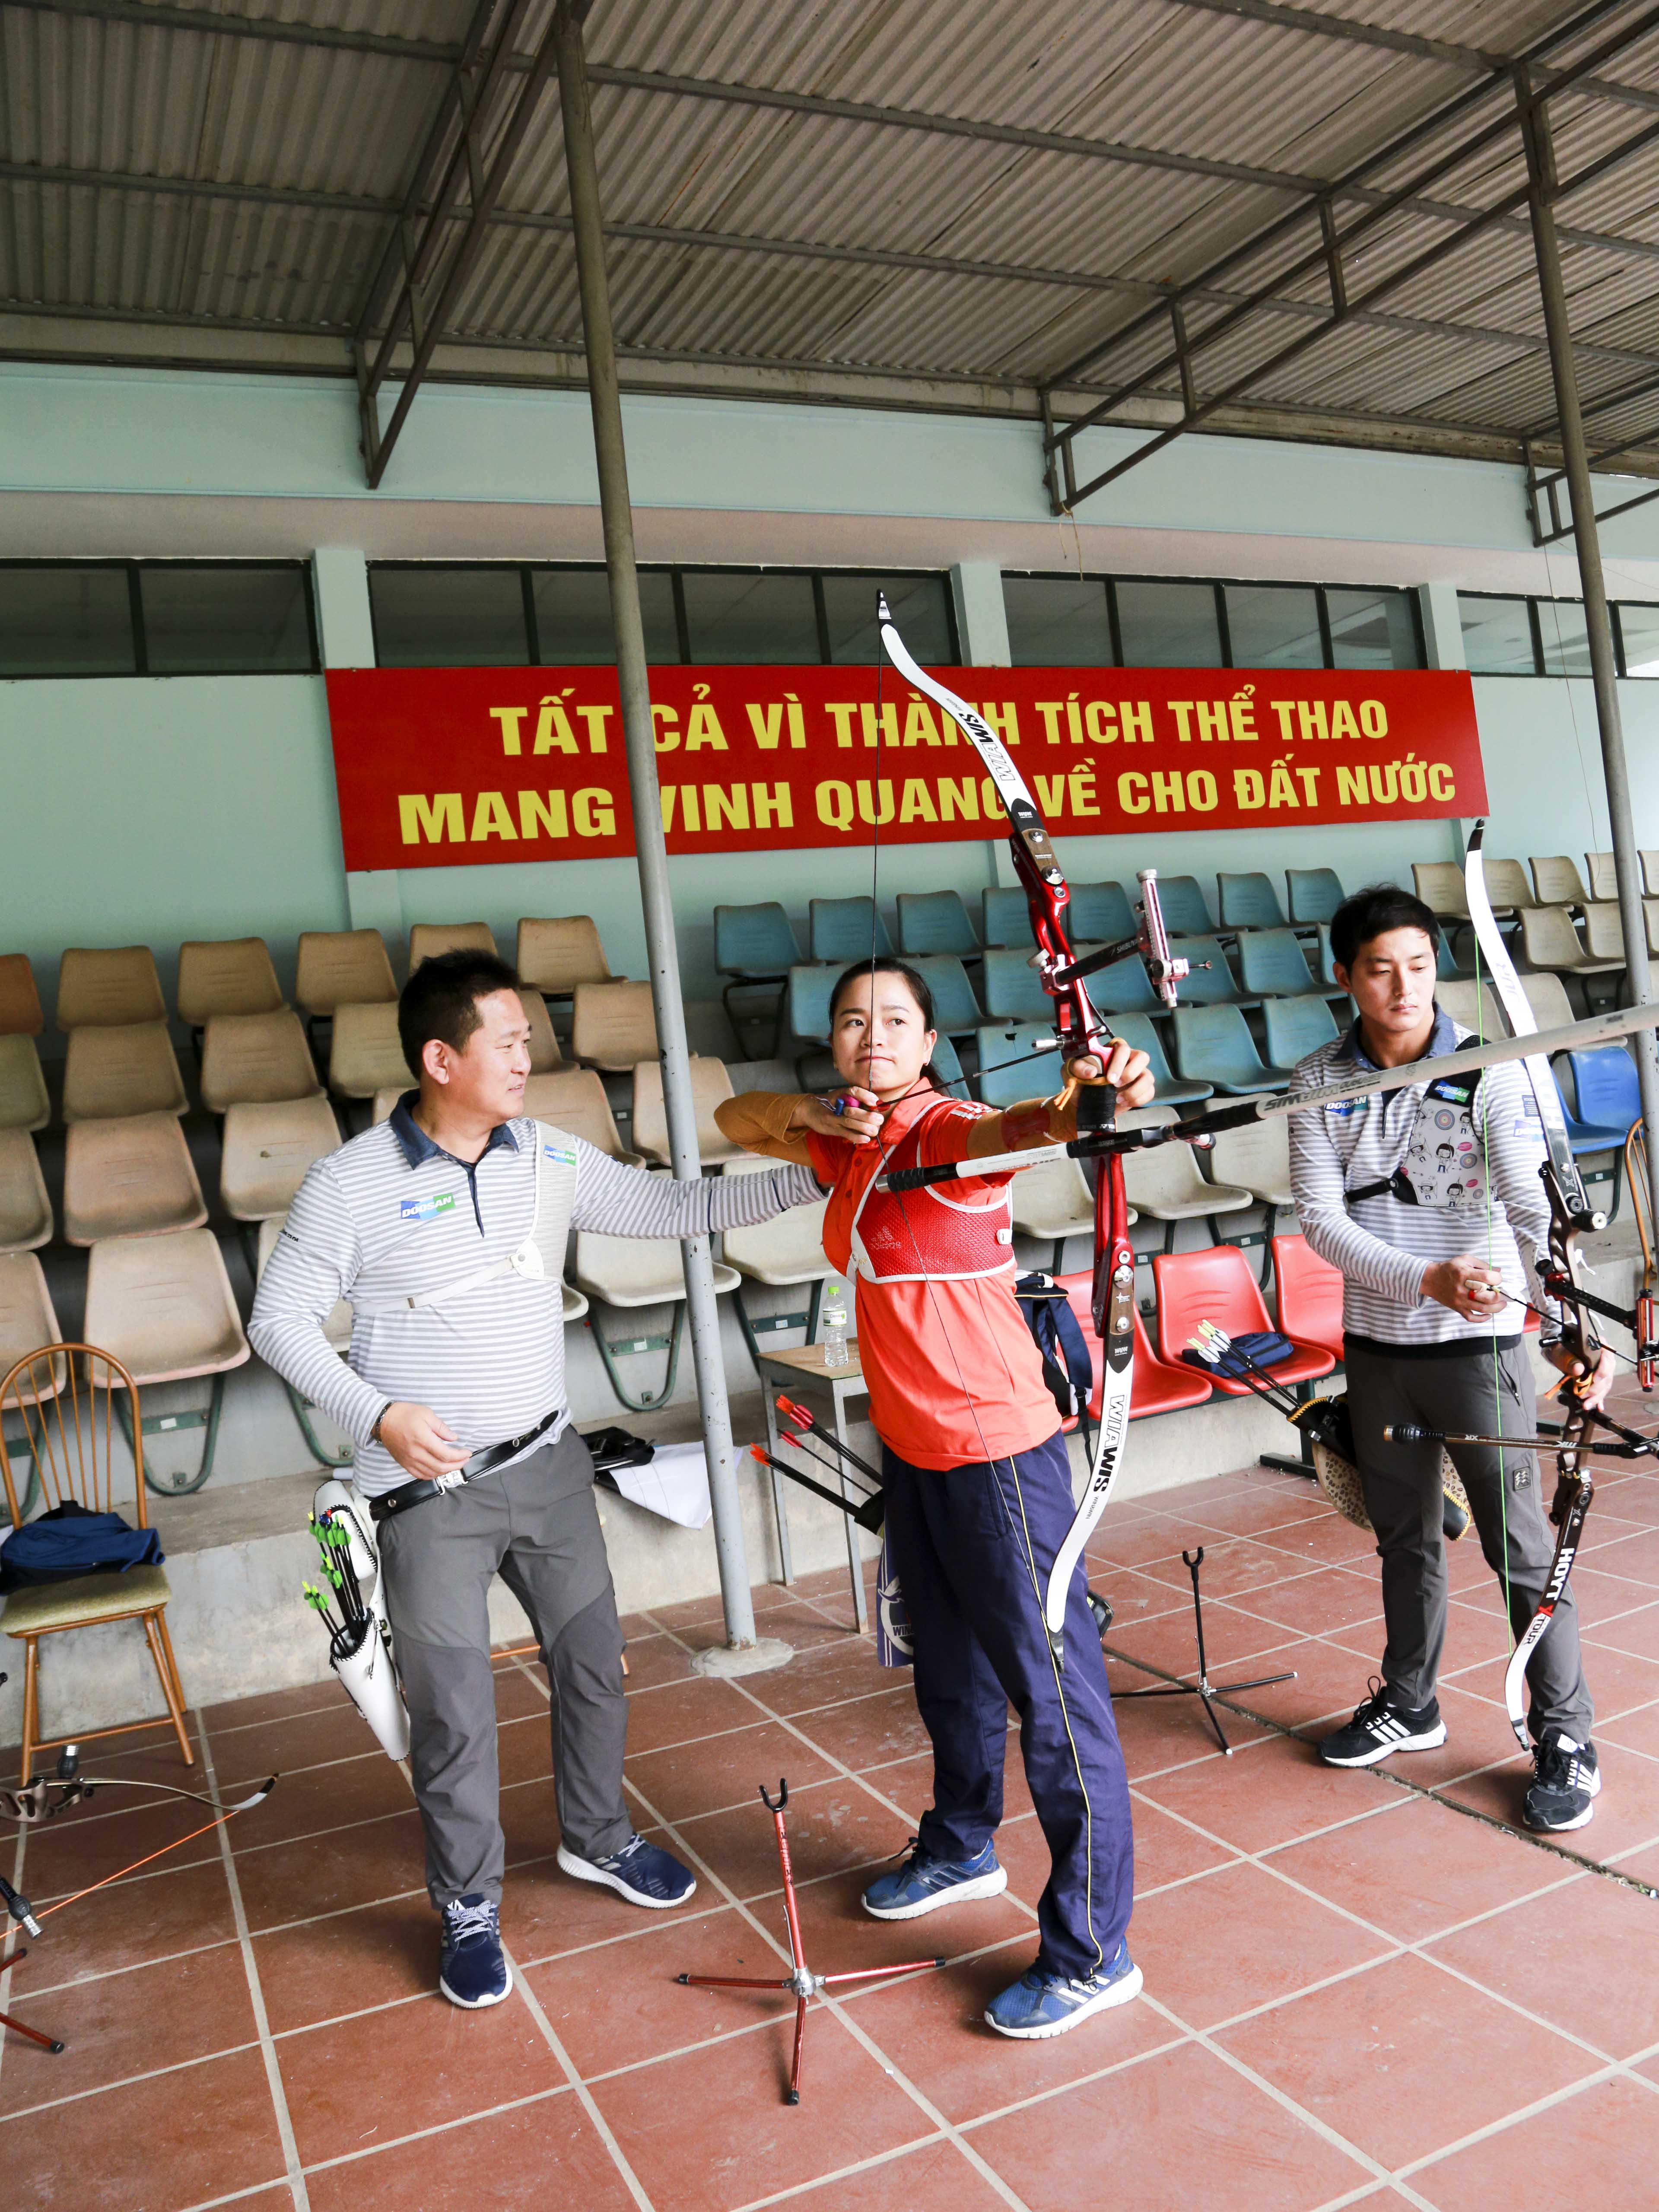 Doosan's Olympic silver medallist archers to train Vietnamese national team